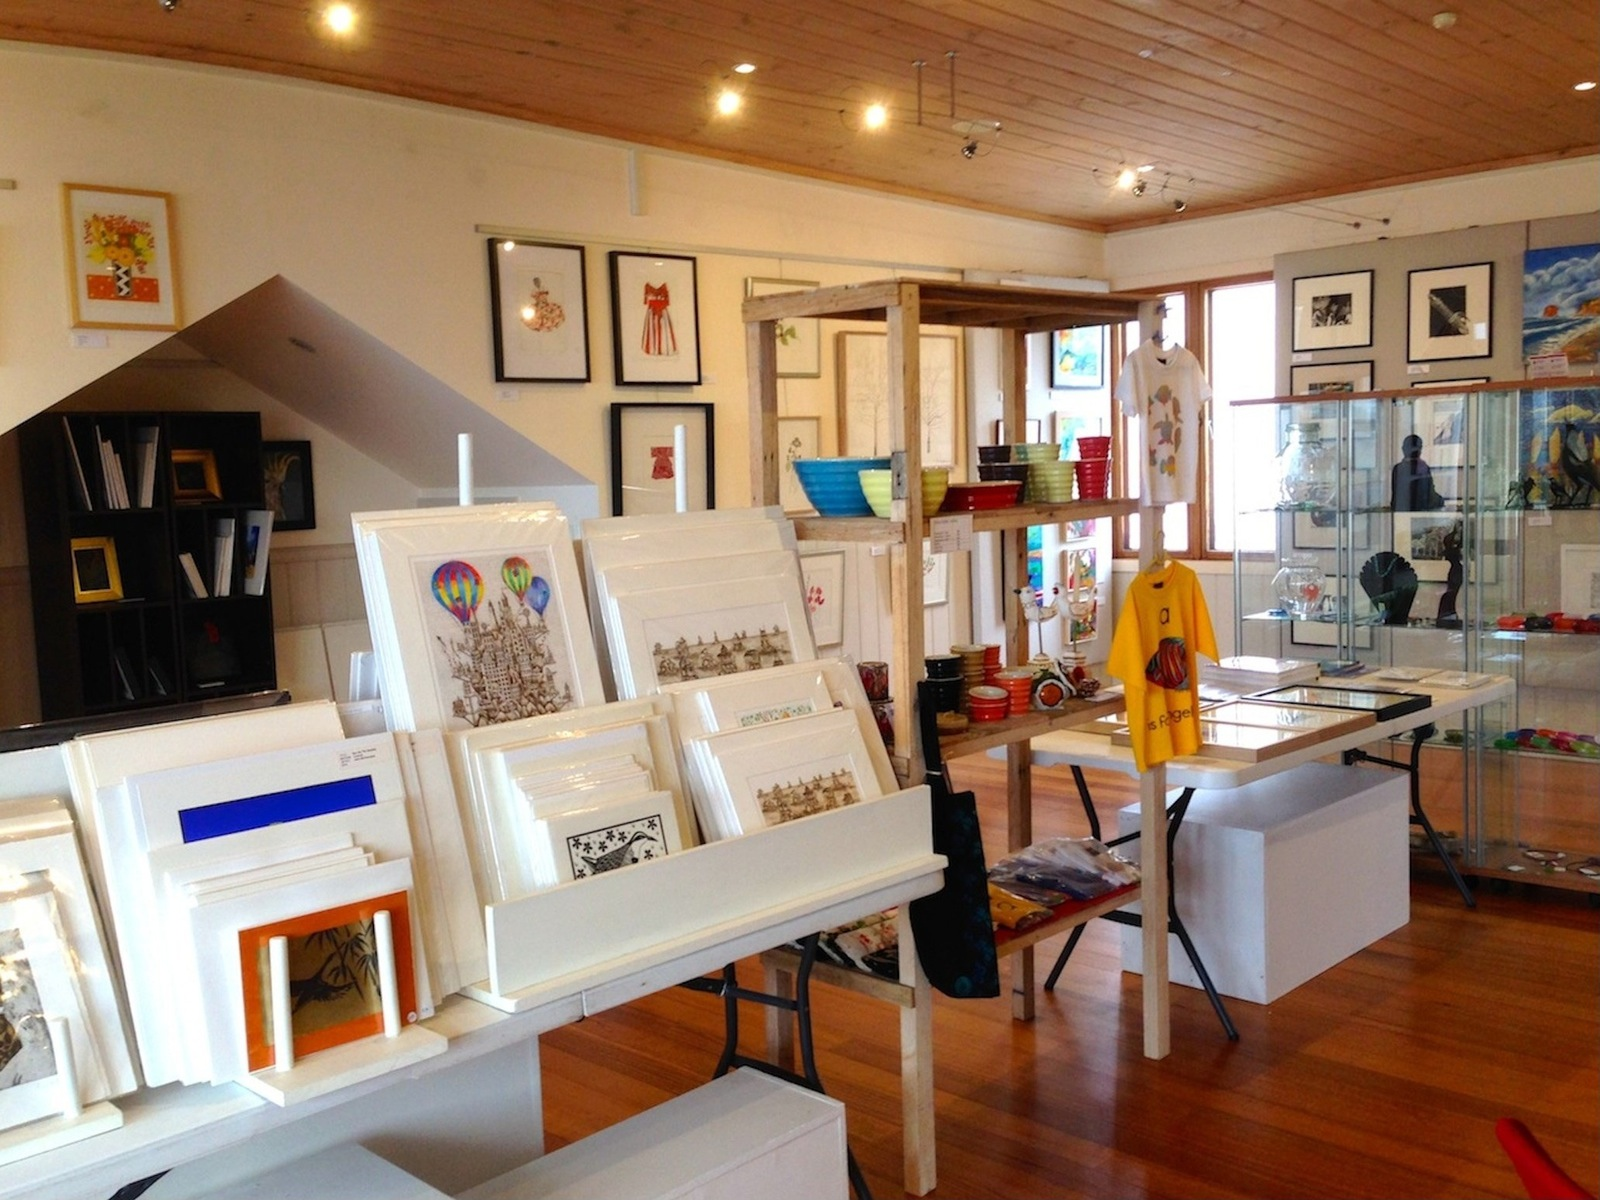 Tussock Upstairs Gallery interior